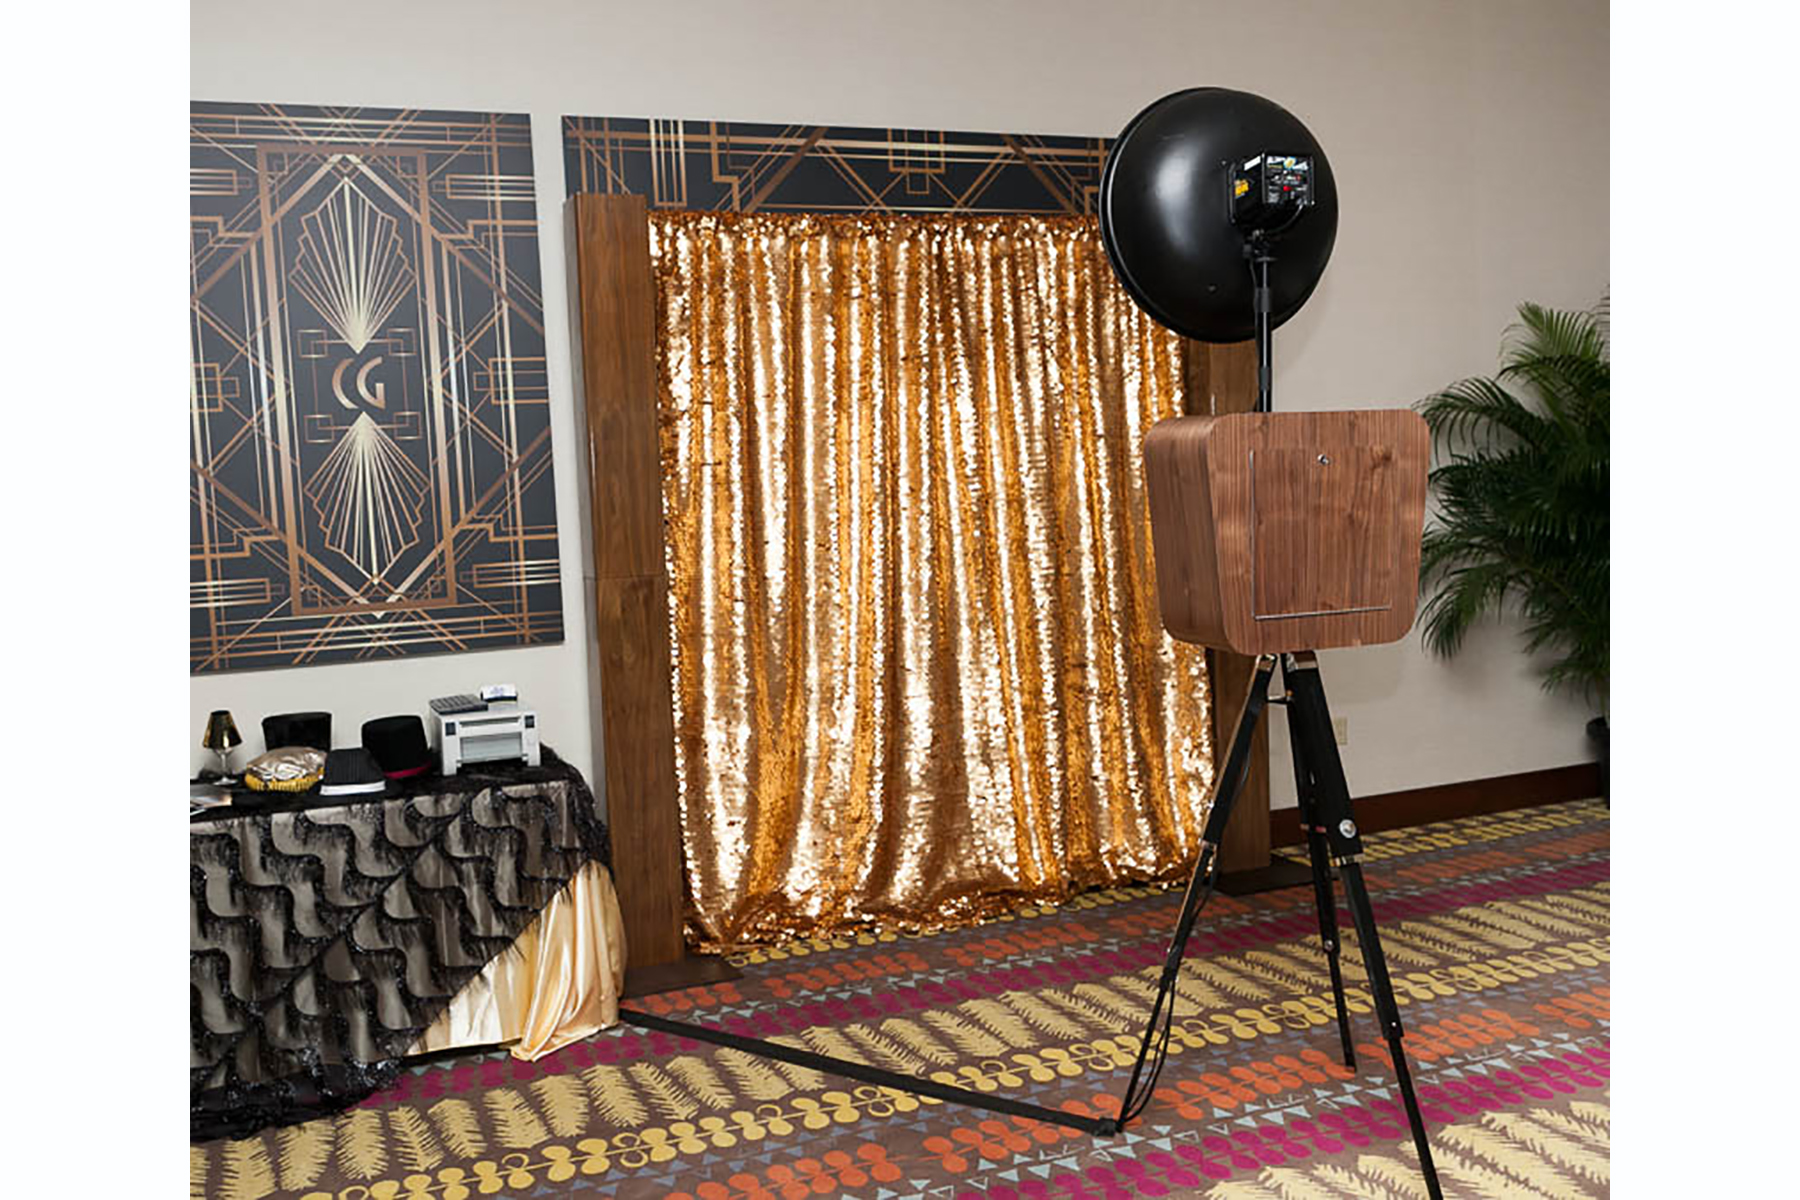 Vintage Walnut Open Air Photo Kiosk with Gold Sequins and Walnut Columns